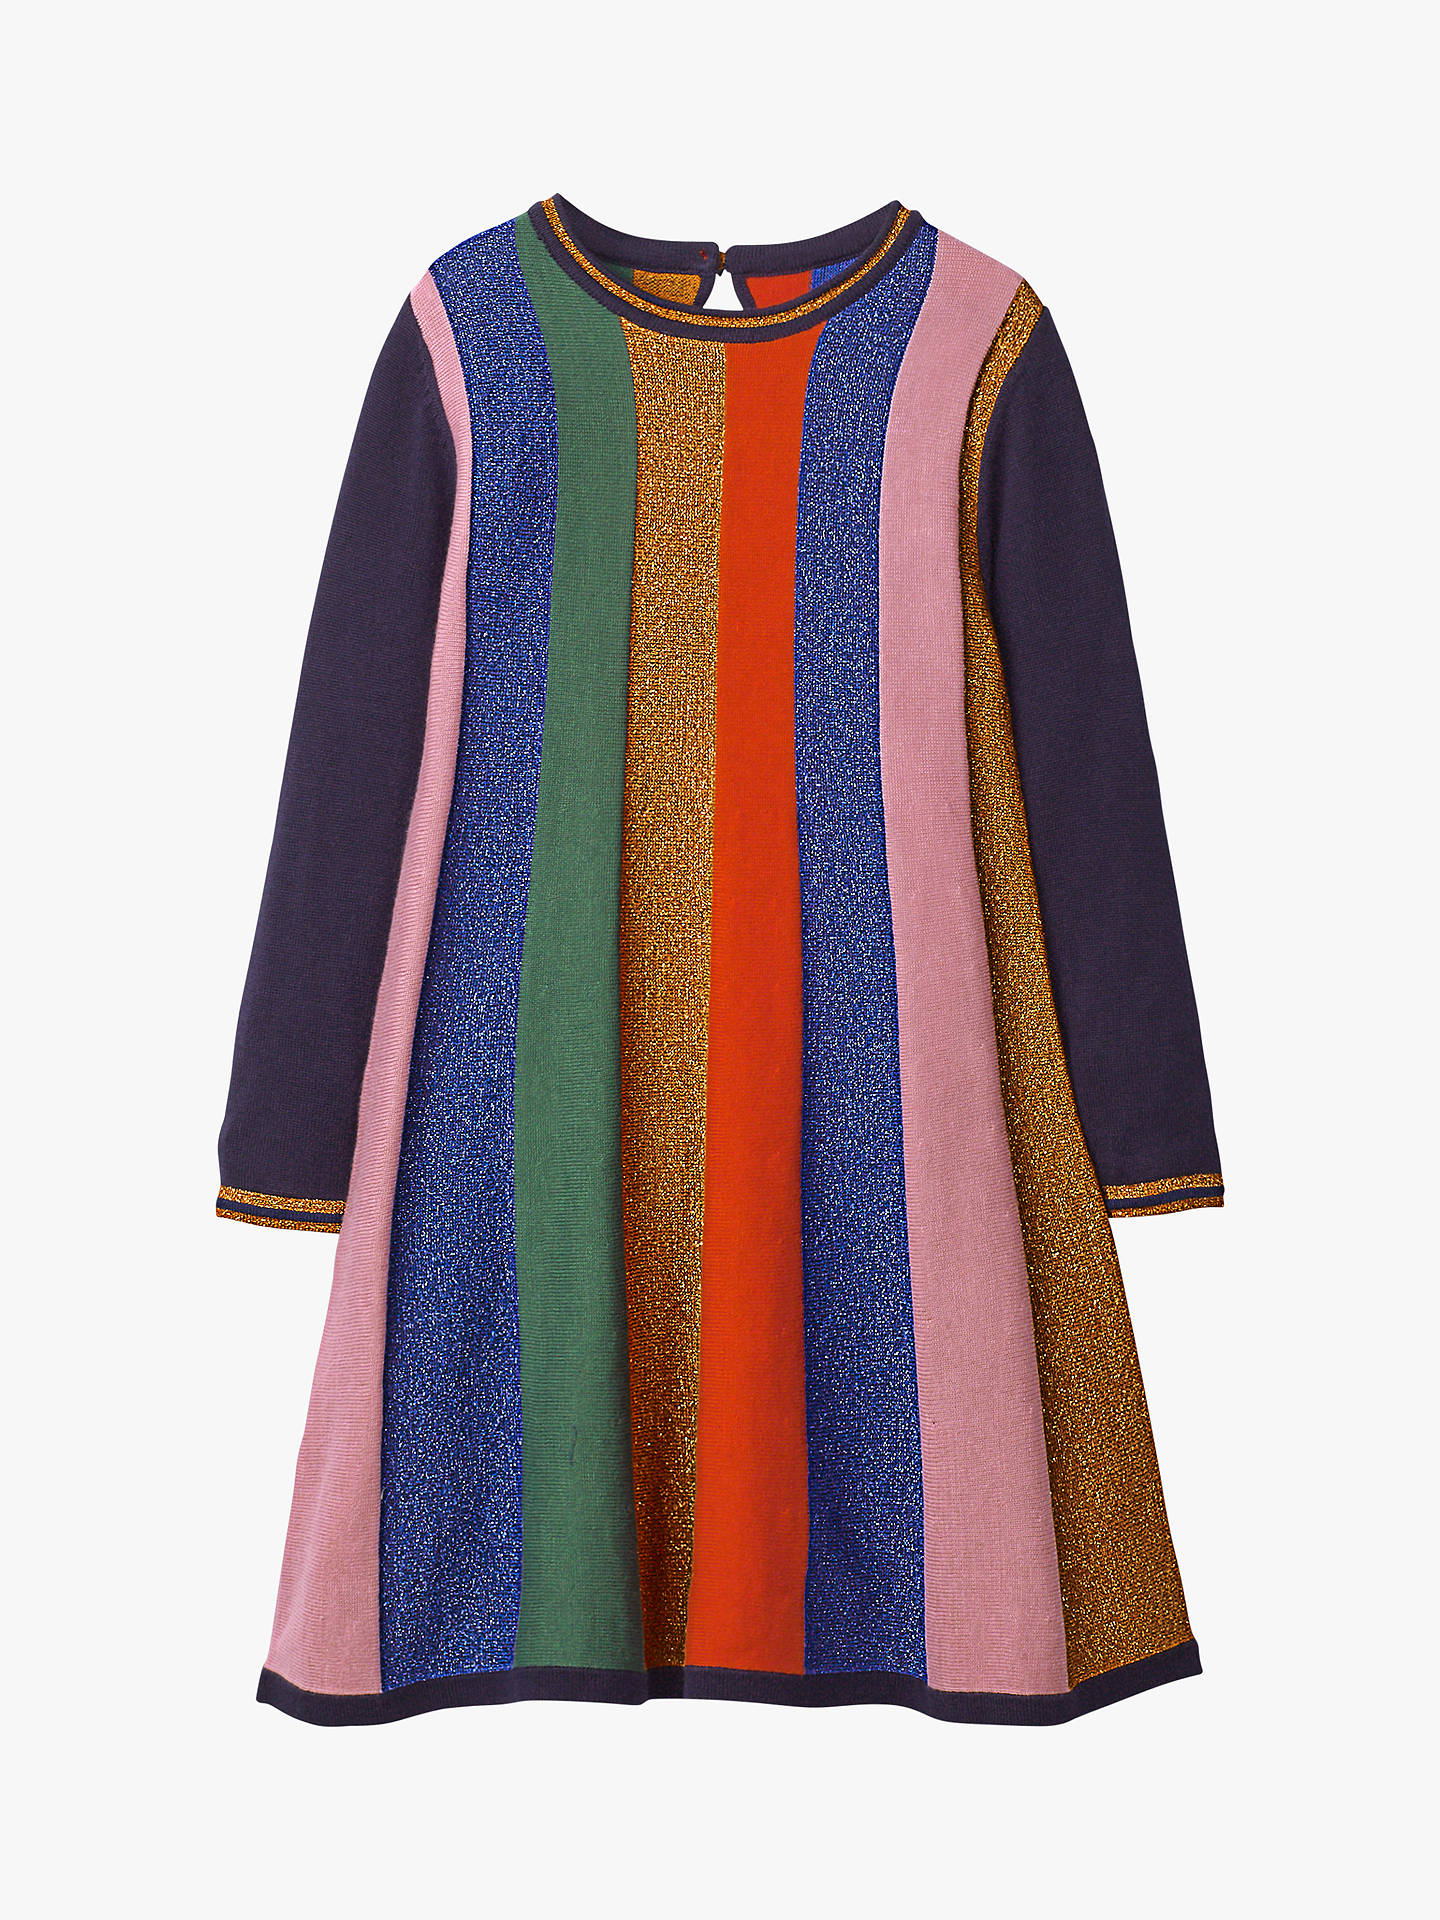 strategy Tactile sense make you annoyed  Mini Boden Girls' Sparkly Stripe Knitted Dress, Rainbow at John Lewis &  Partners